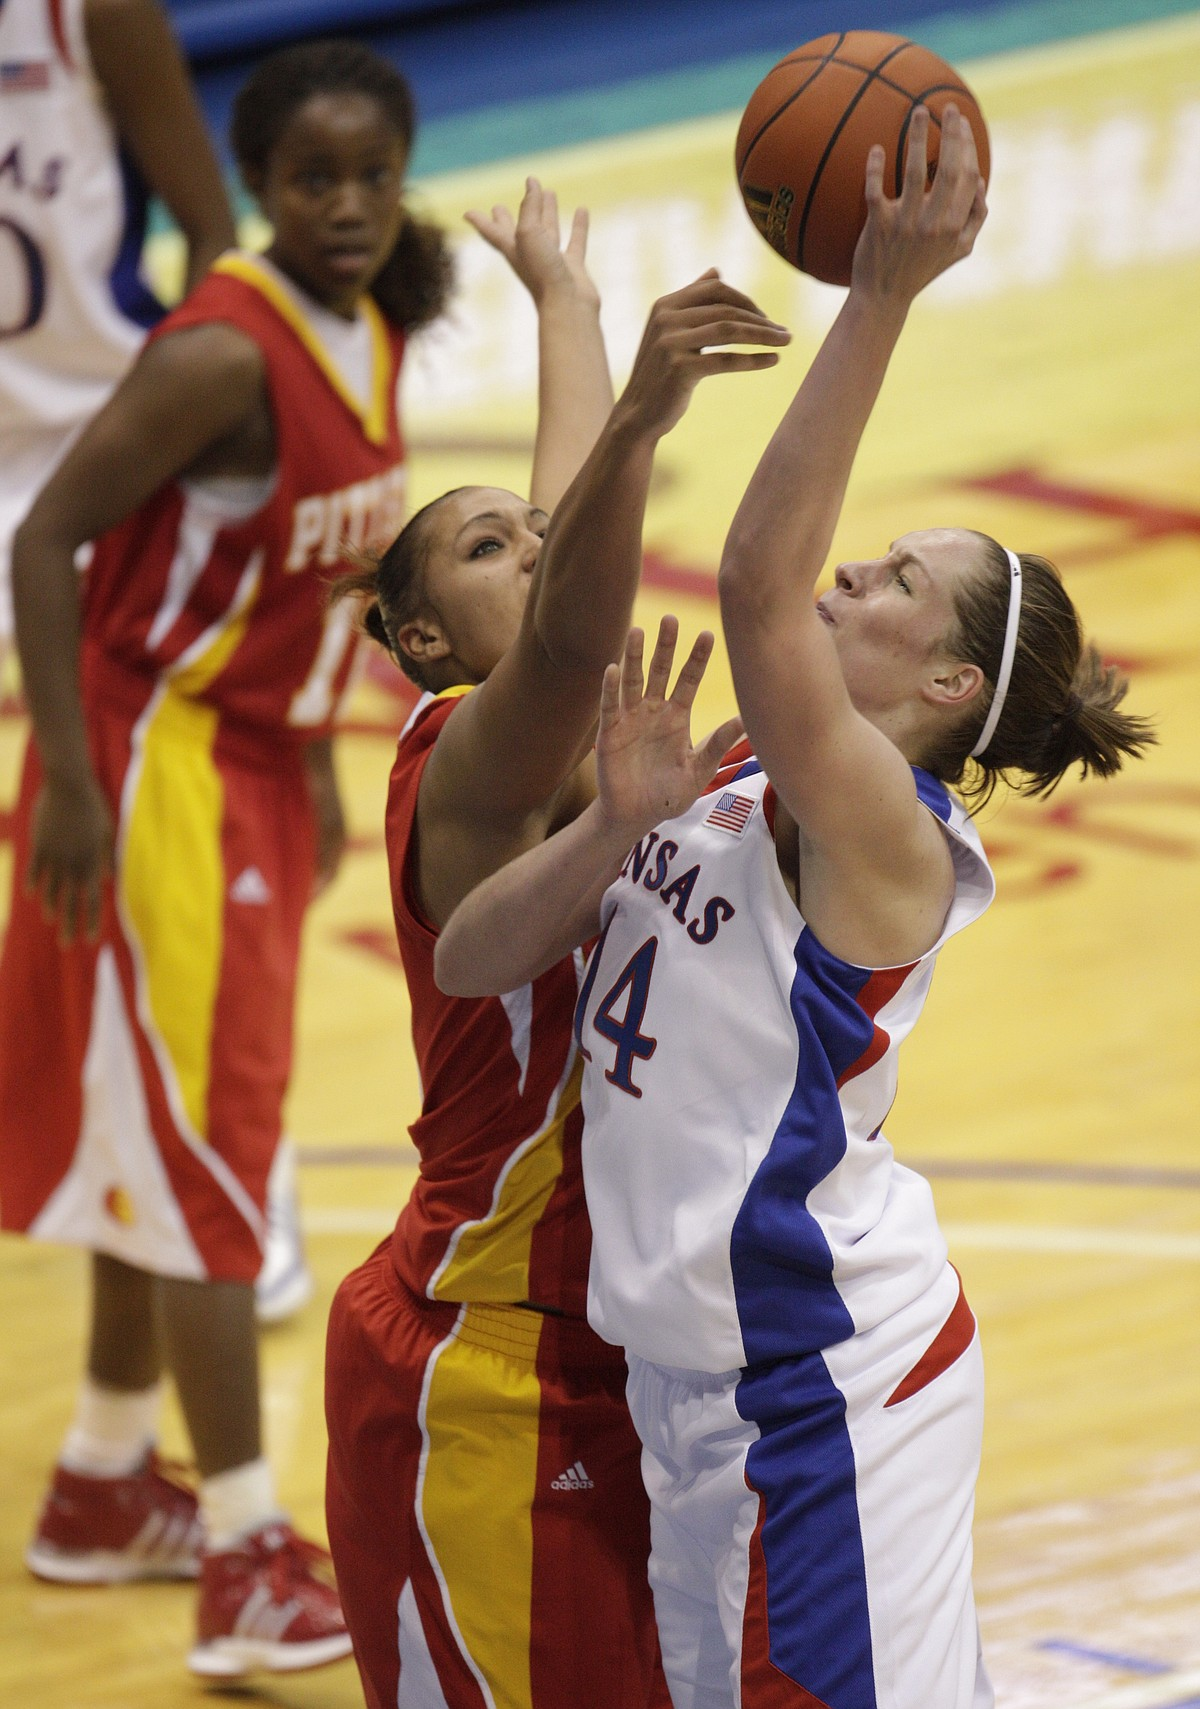 KU women's basketball vs. Pittsburg State | KUsports.com